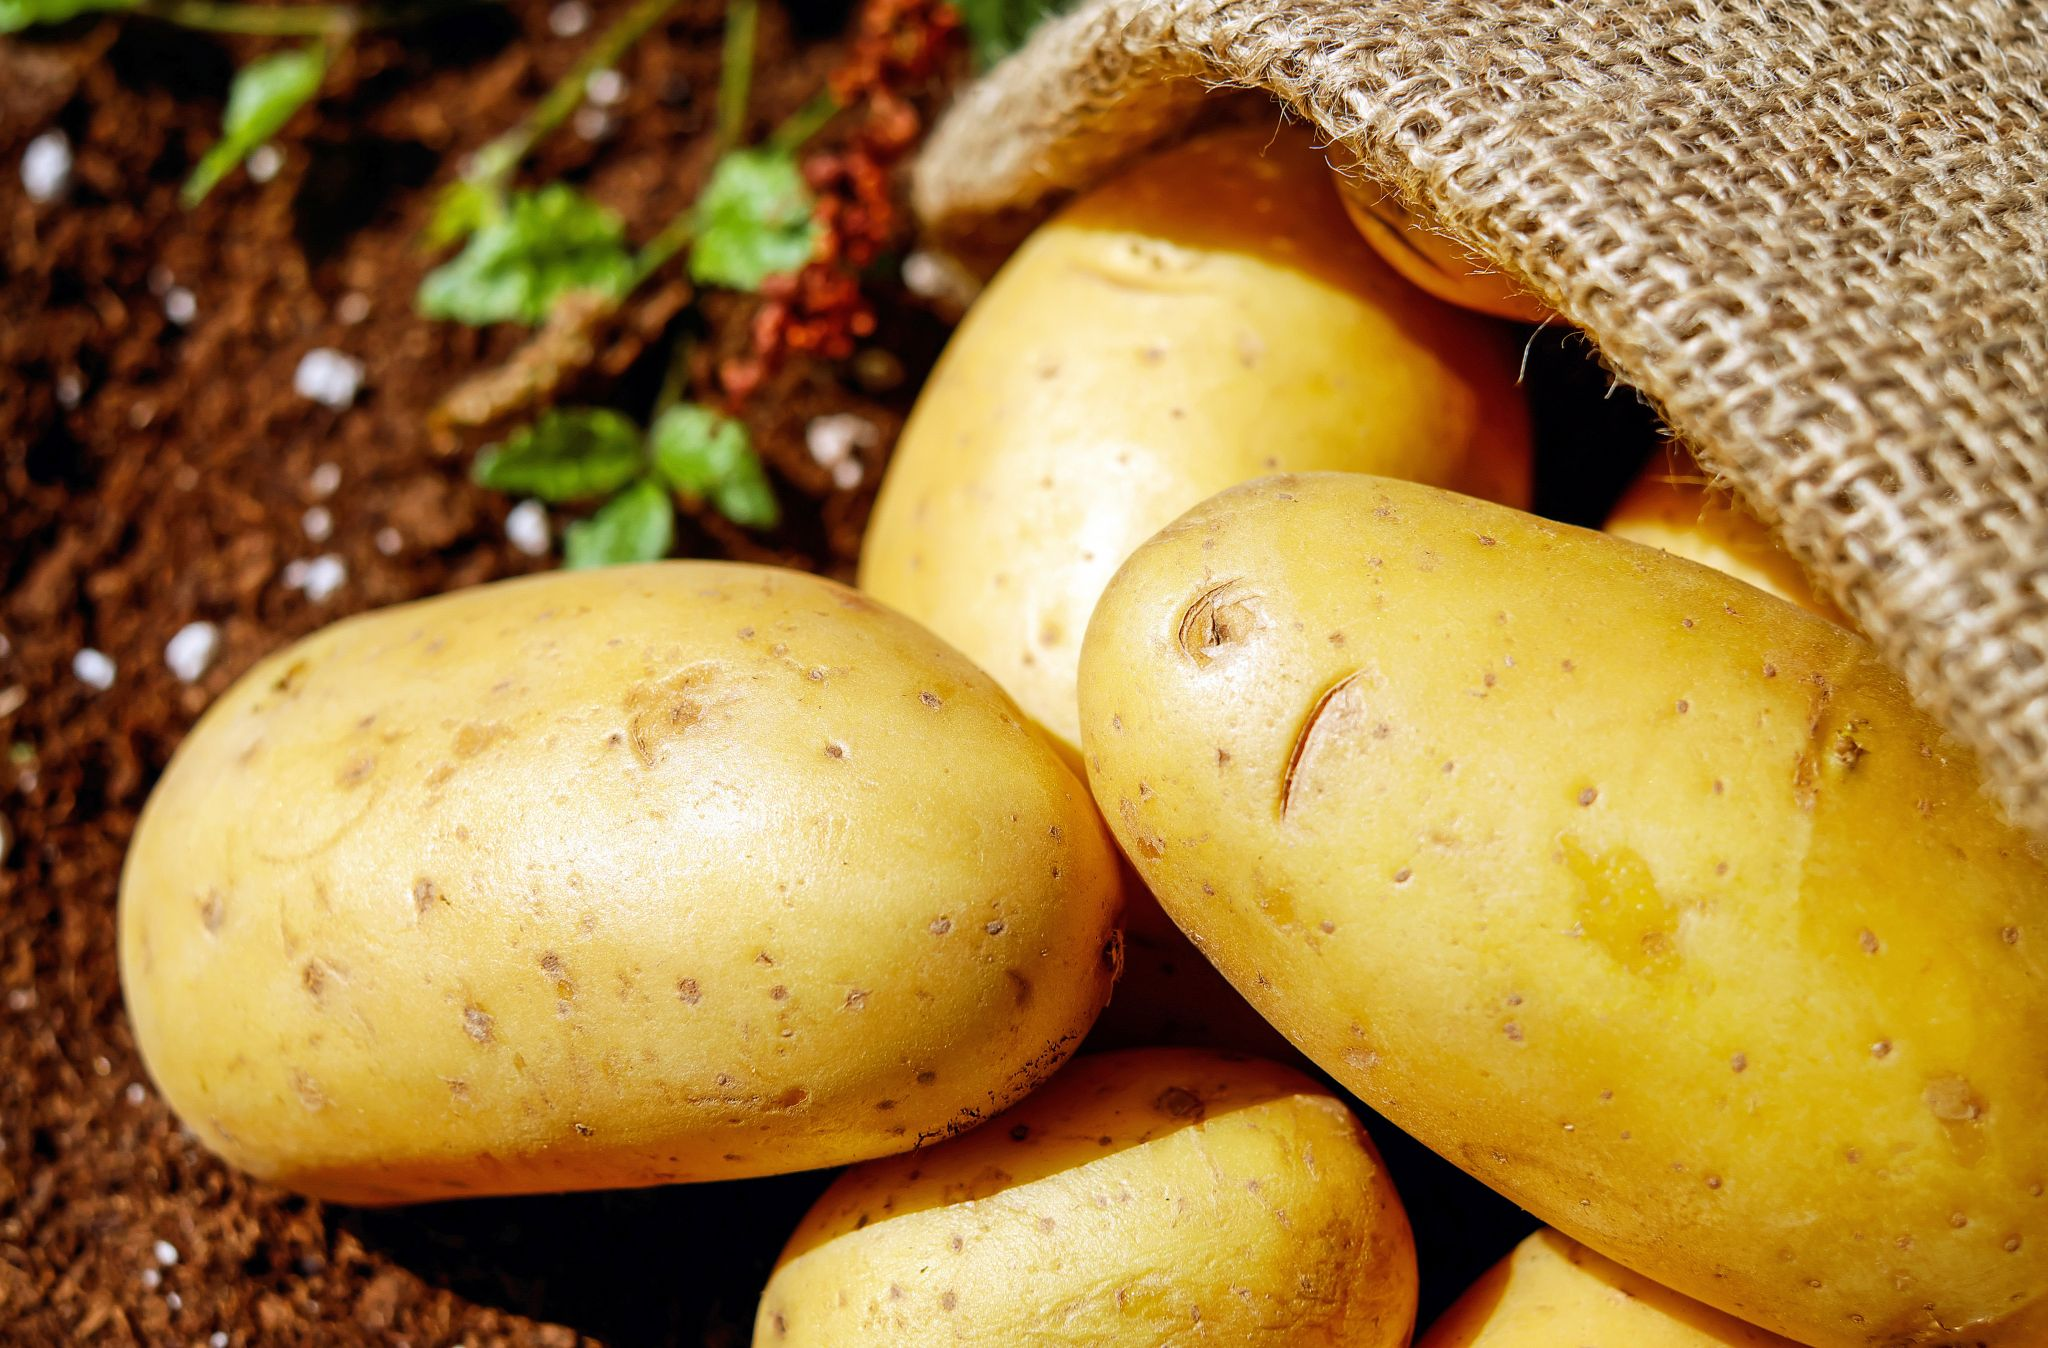 reduce food waste at home - newly picked potatoes in a bag